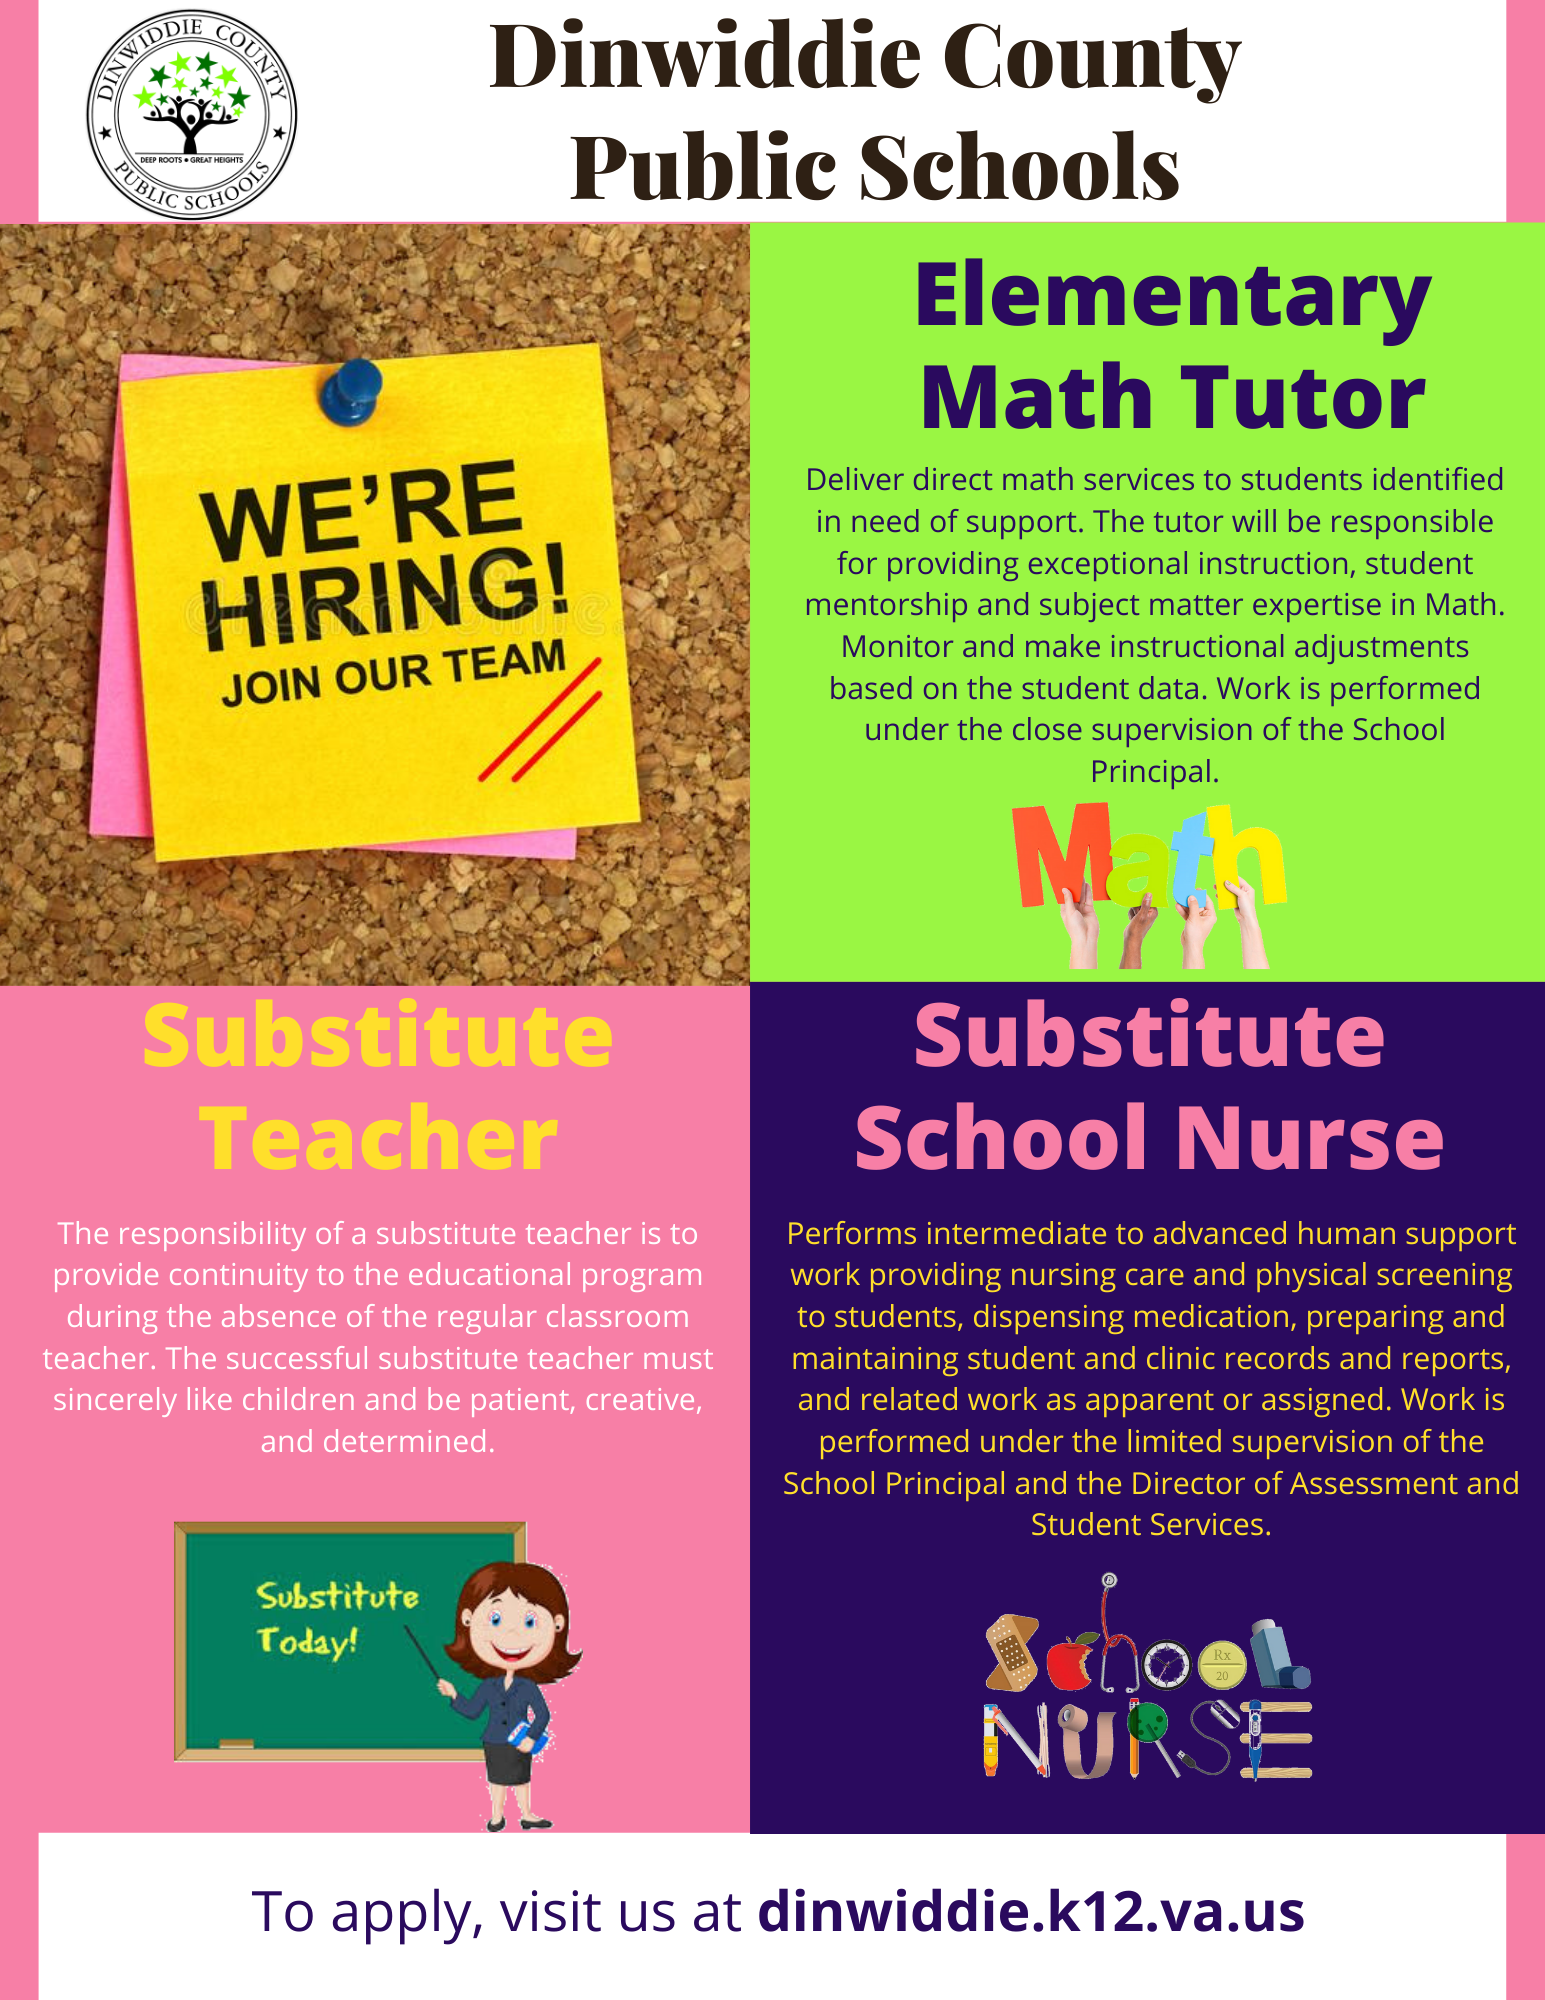 Dinwiddie County Public Schools, We're Hiring! Join our team. Elementary Math Tutor Deliver direct math services to students identified in need of support. The tutor will be responsible for providing exceptional instruction, student mentorship and subject matter expertise in Math. Monitor and make instructional adjustments based on the student data. Work is performed under the close supervision of the School Principal. Substitute Teacher Substitute School Nurse Performs intermediate to advanced human support work providing nursing care and physical screening to students, dispensing medication, preparing and maintaining student and clinic records and reports, and related work as apparent or assigned. Work is performed under the limited supervision of the School Principal and the Director of Assessment and Student Services. The responsibility of a substitute teacher is to provide continuity to the educational program during the absence of the regular classroom teacher. The successful substitute teacher must sincerely like children and be patient, creative, and determined. Substitute School Nurse Performs intermediate to advanced human support work providing nursing care and physical screening to students, dispensing medication, preparing and maintaining student and clinic records and reports, and related work as apparent or assigned. Work is performed under the limited supervision of the School Principal and the Director of Assessment and Student Services. To apply, visit us at dinwiddie.k12.va.us